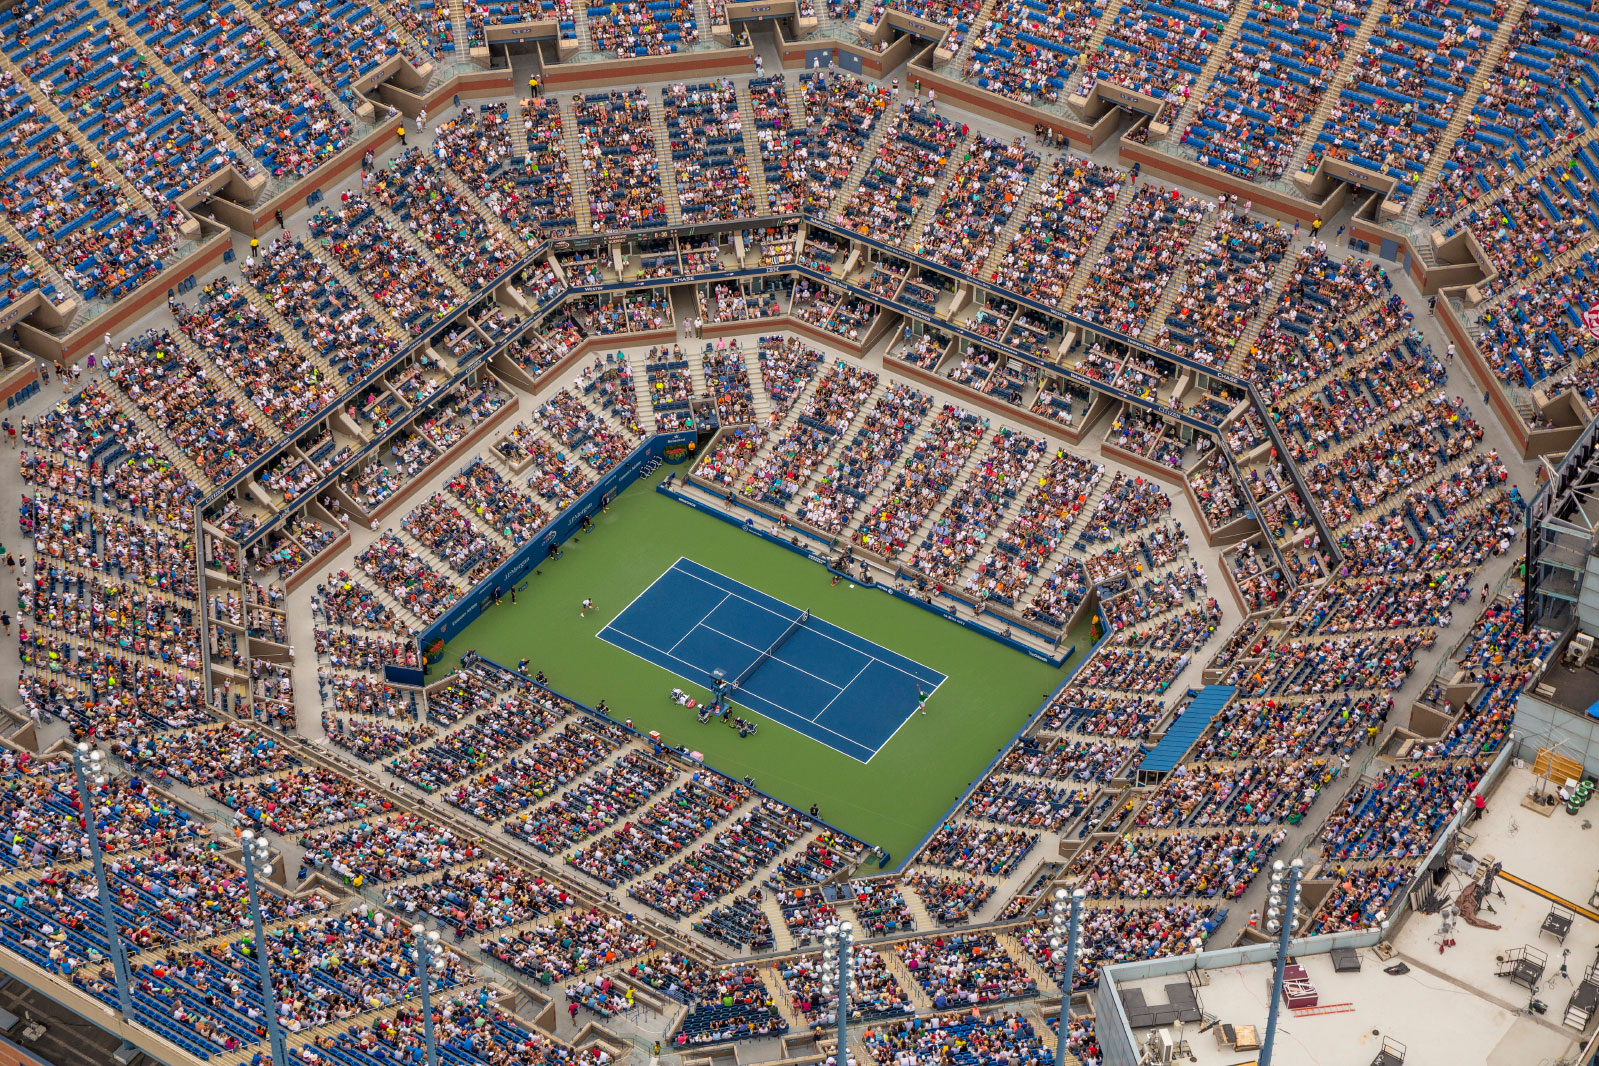 Sam Querrey is serving to Novak Djokovic in the third round of the men's singles at the 2014 U.S. Open.